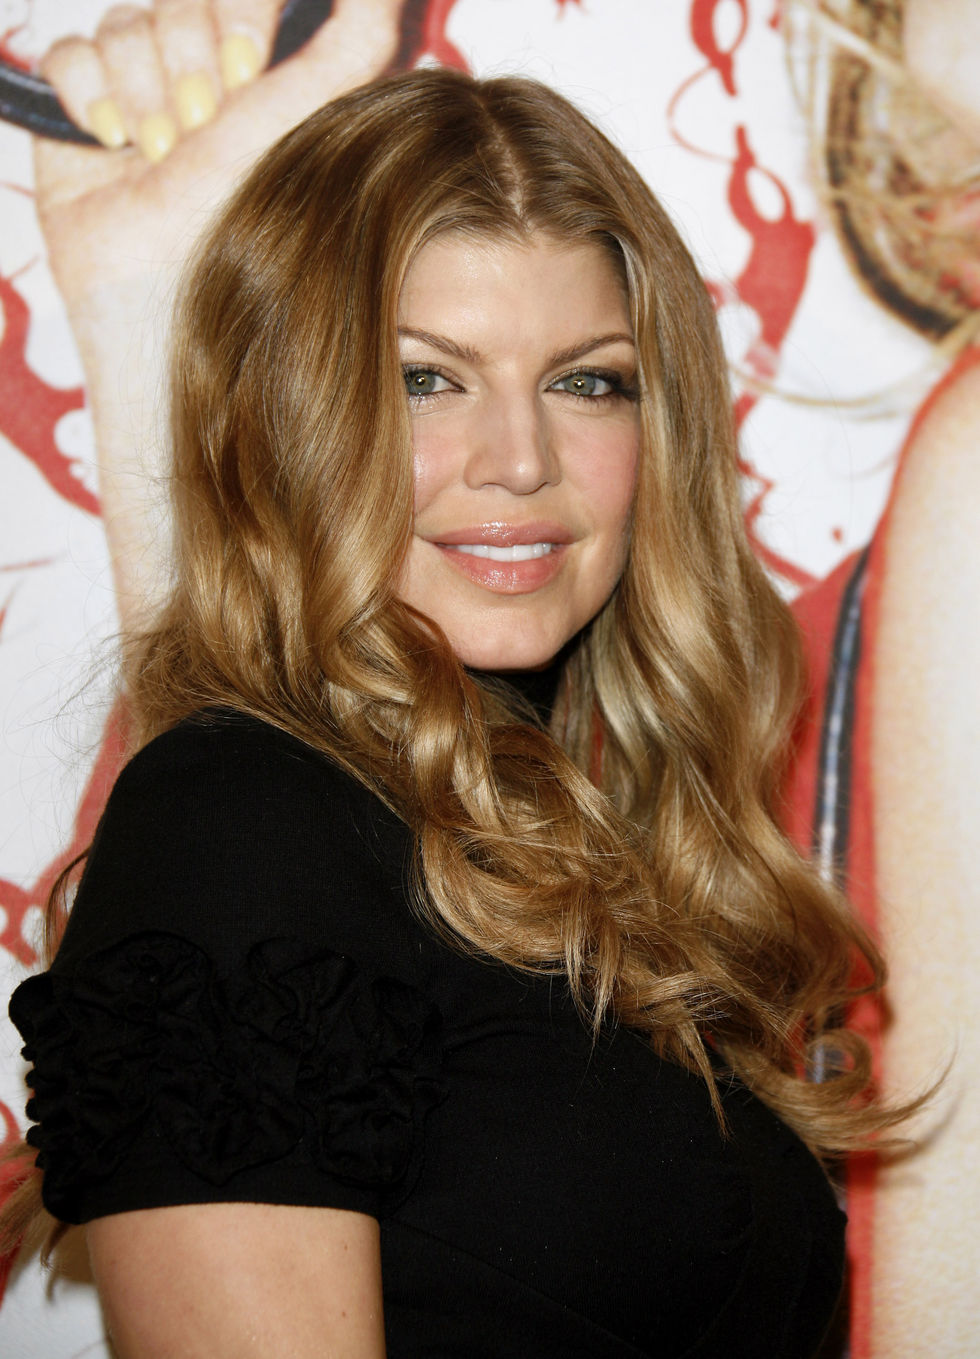 fergie-launching-spring-2008-handbag-collection-01